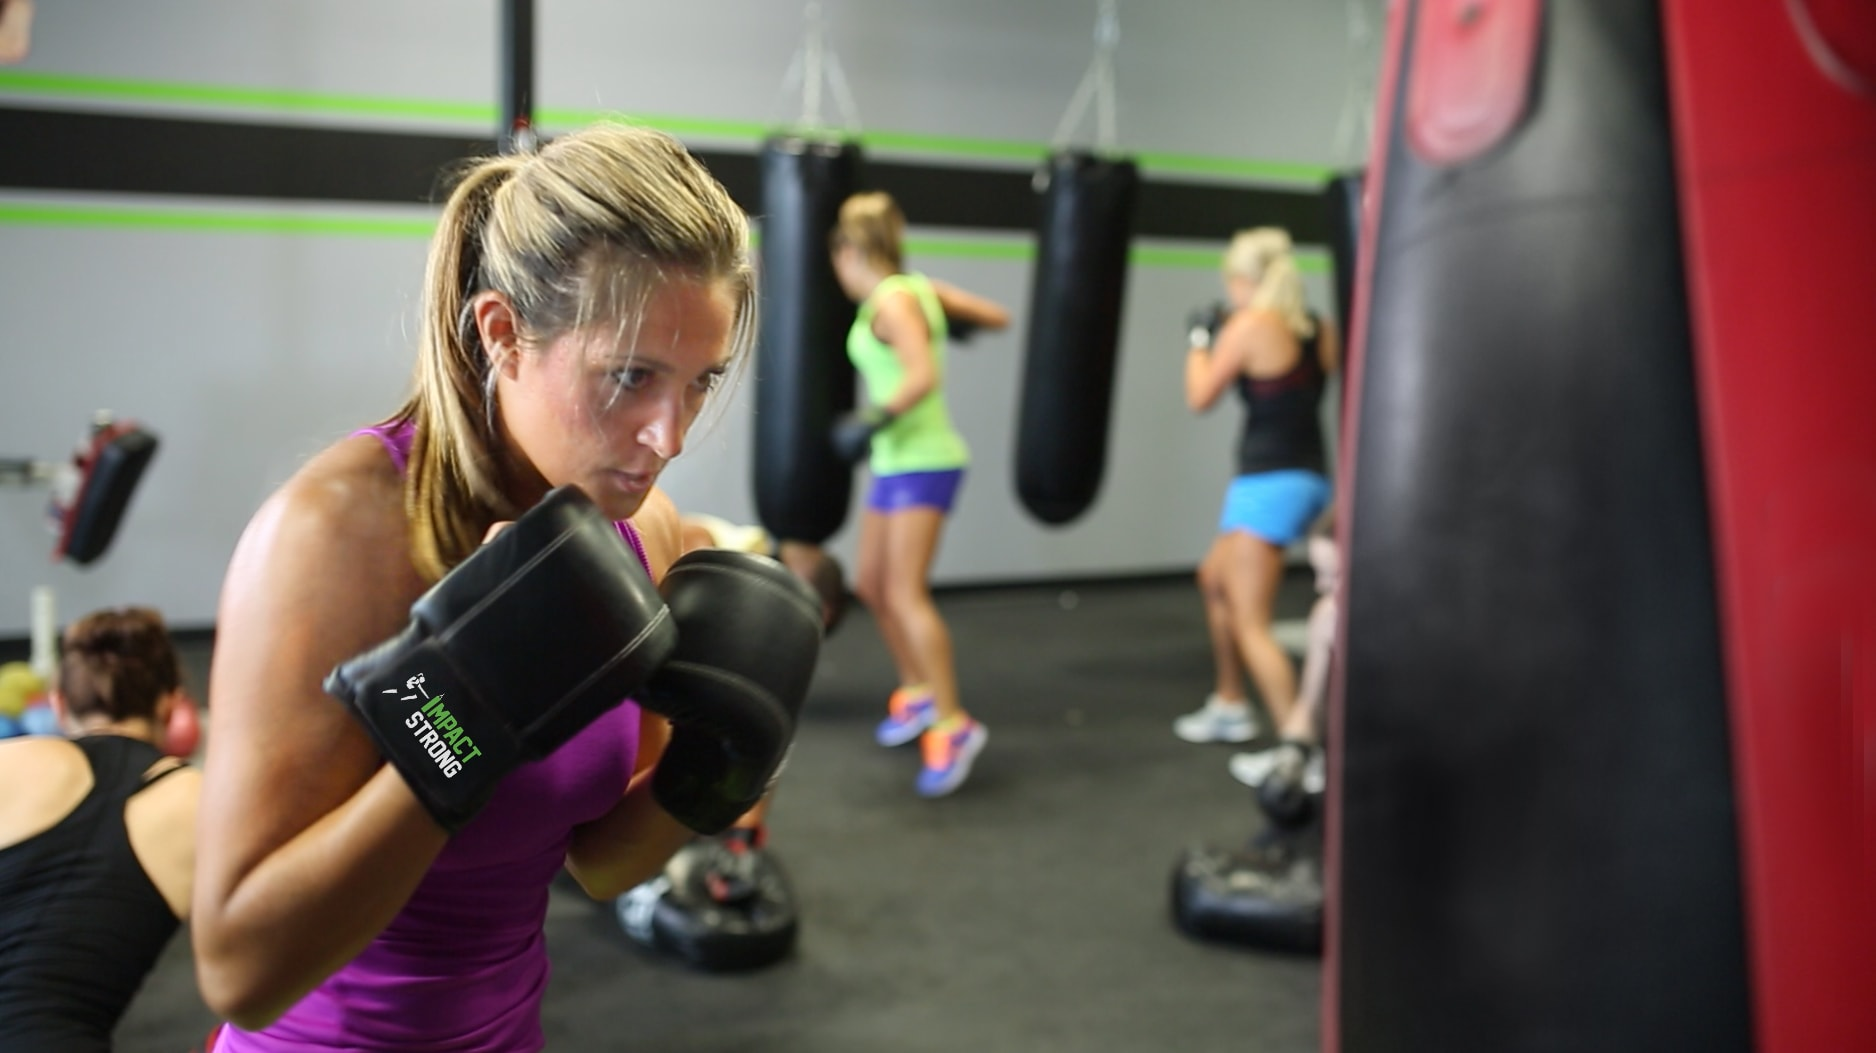 Top New Fitness Gym Franchise | IMPACT STRONG Kickboxing